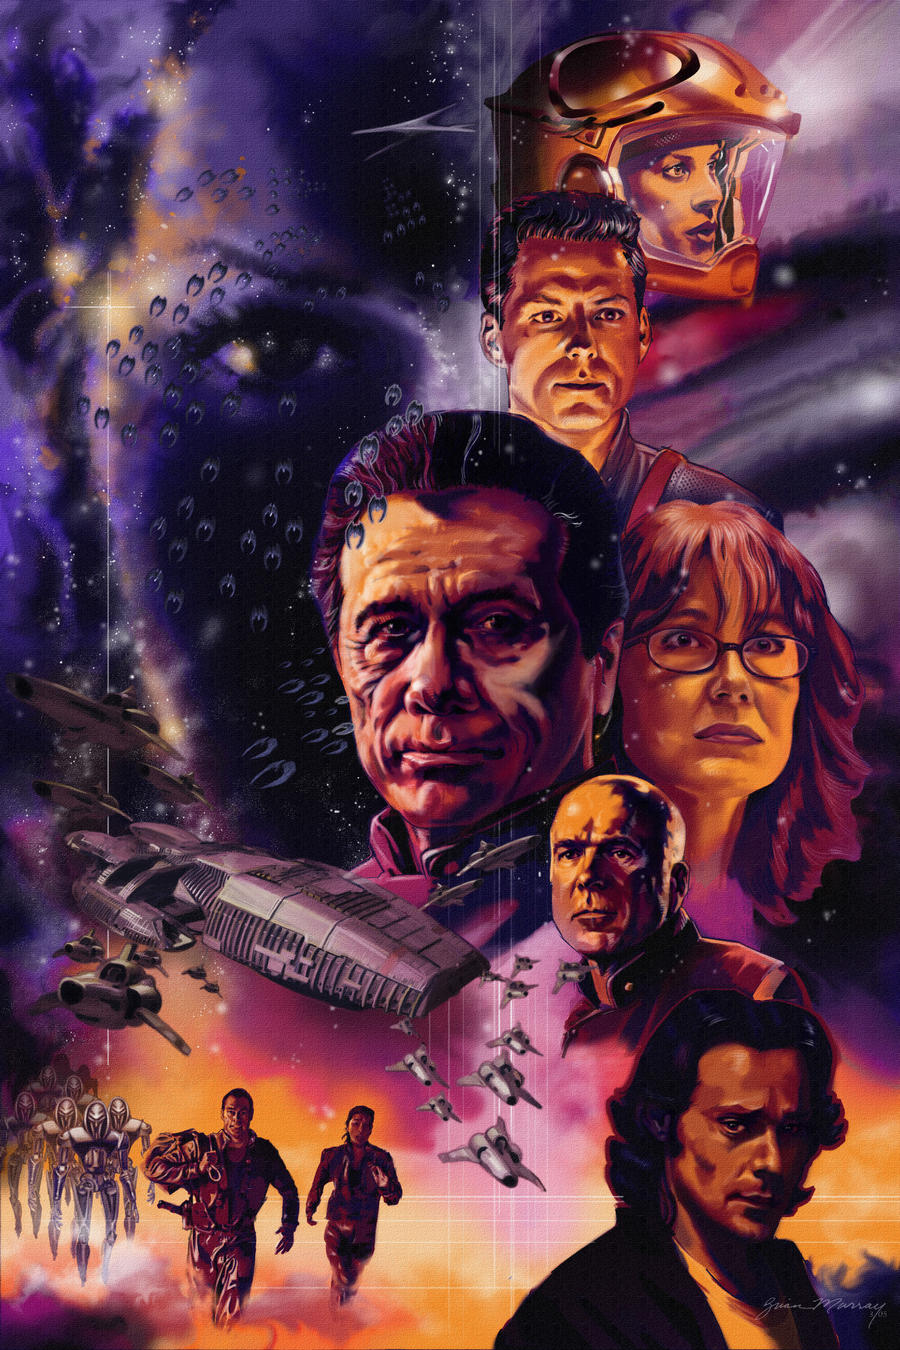 Battlestar Galactica by Adobewan